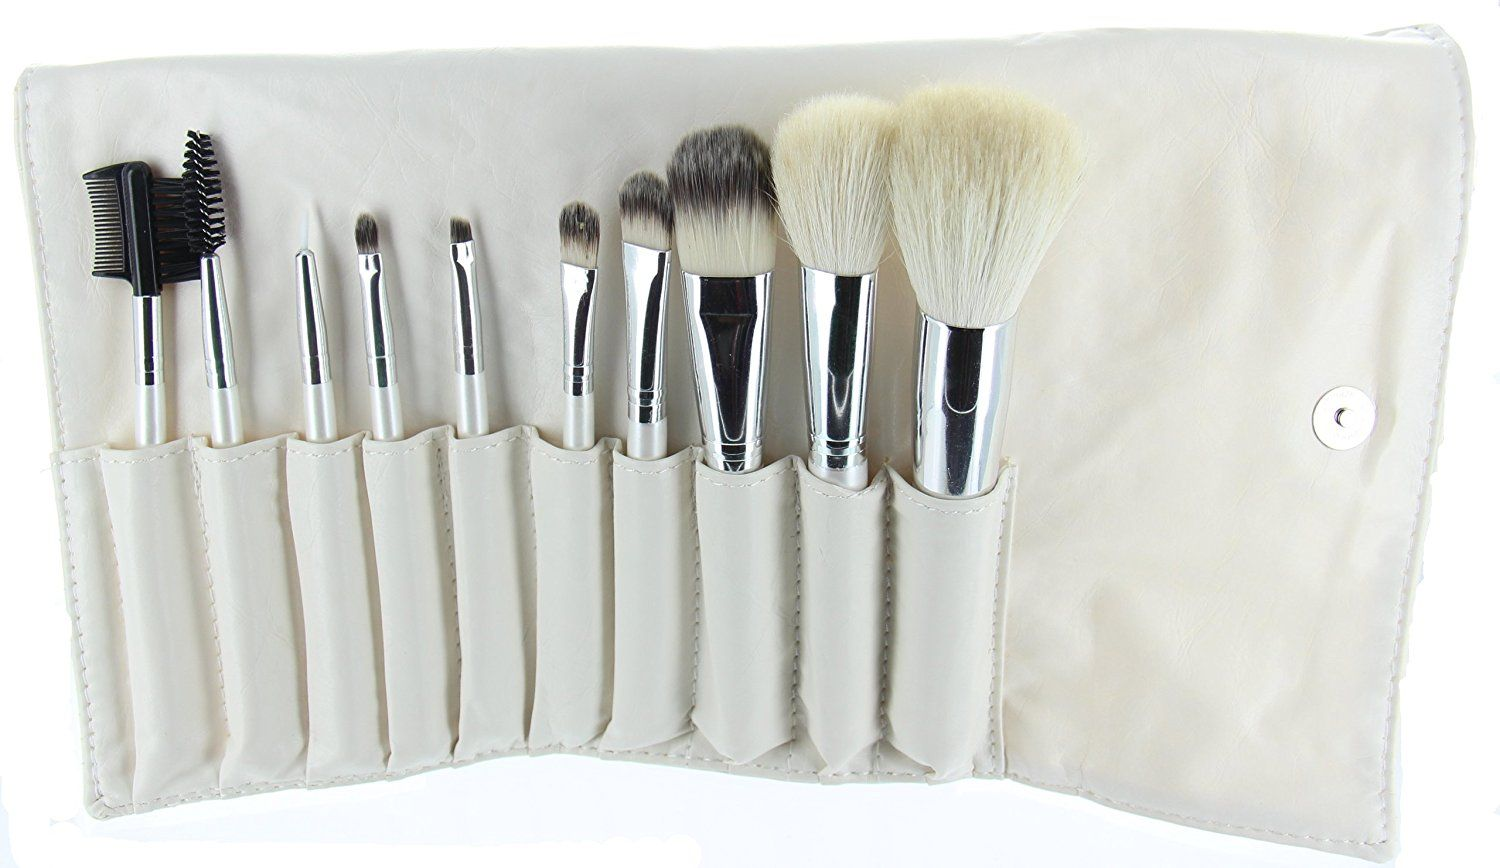 ETA Professional Cosmetic Brush Set with Travel Case (10